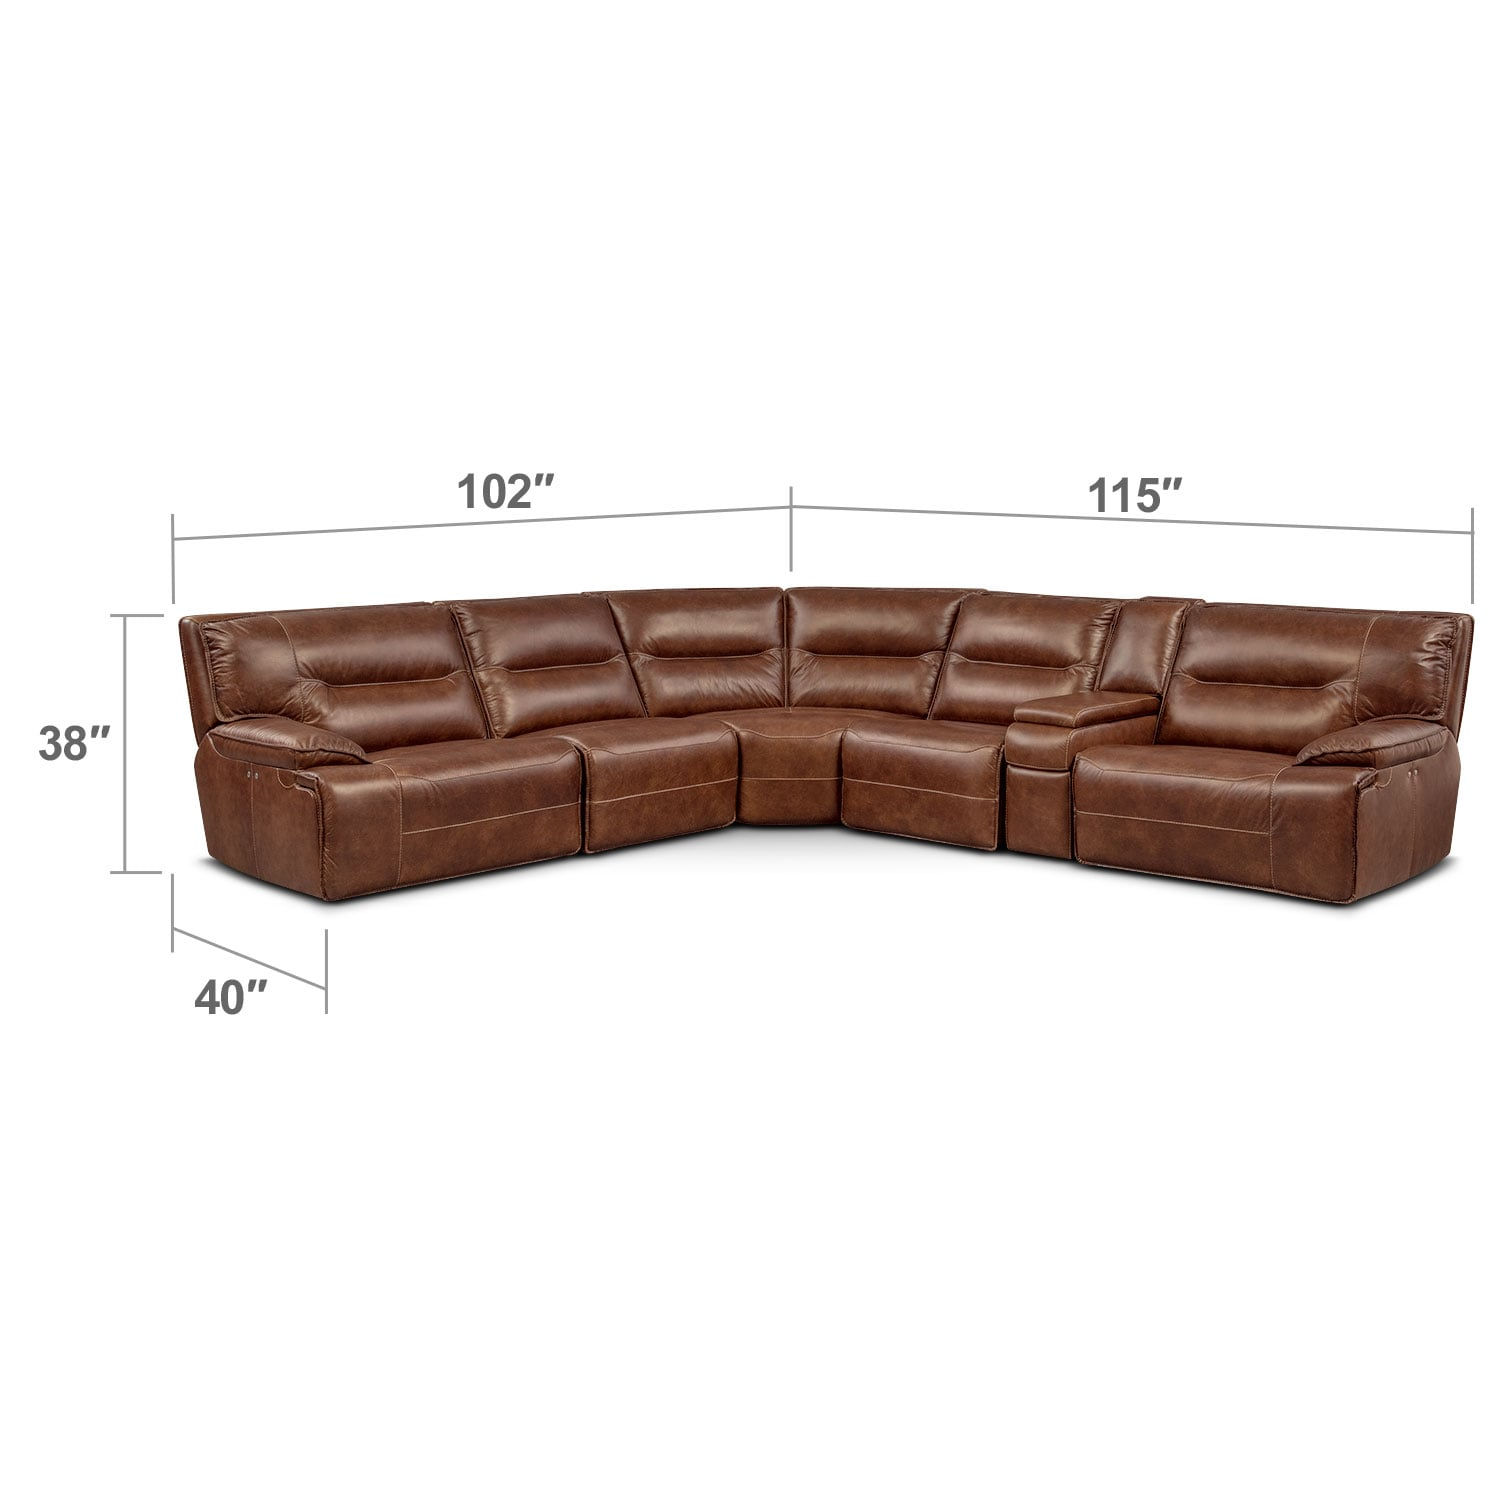 Living Room Furniture - Glenmont 6-Piece Power Reclining Sectional with 3 Power Recliners - Brown